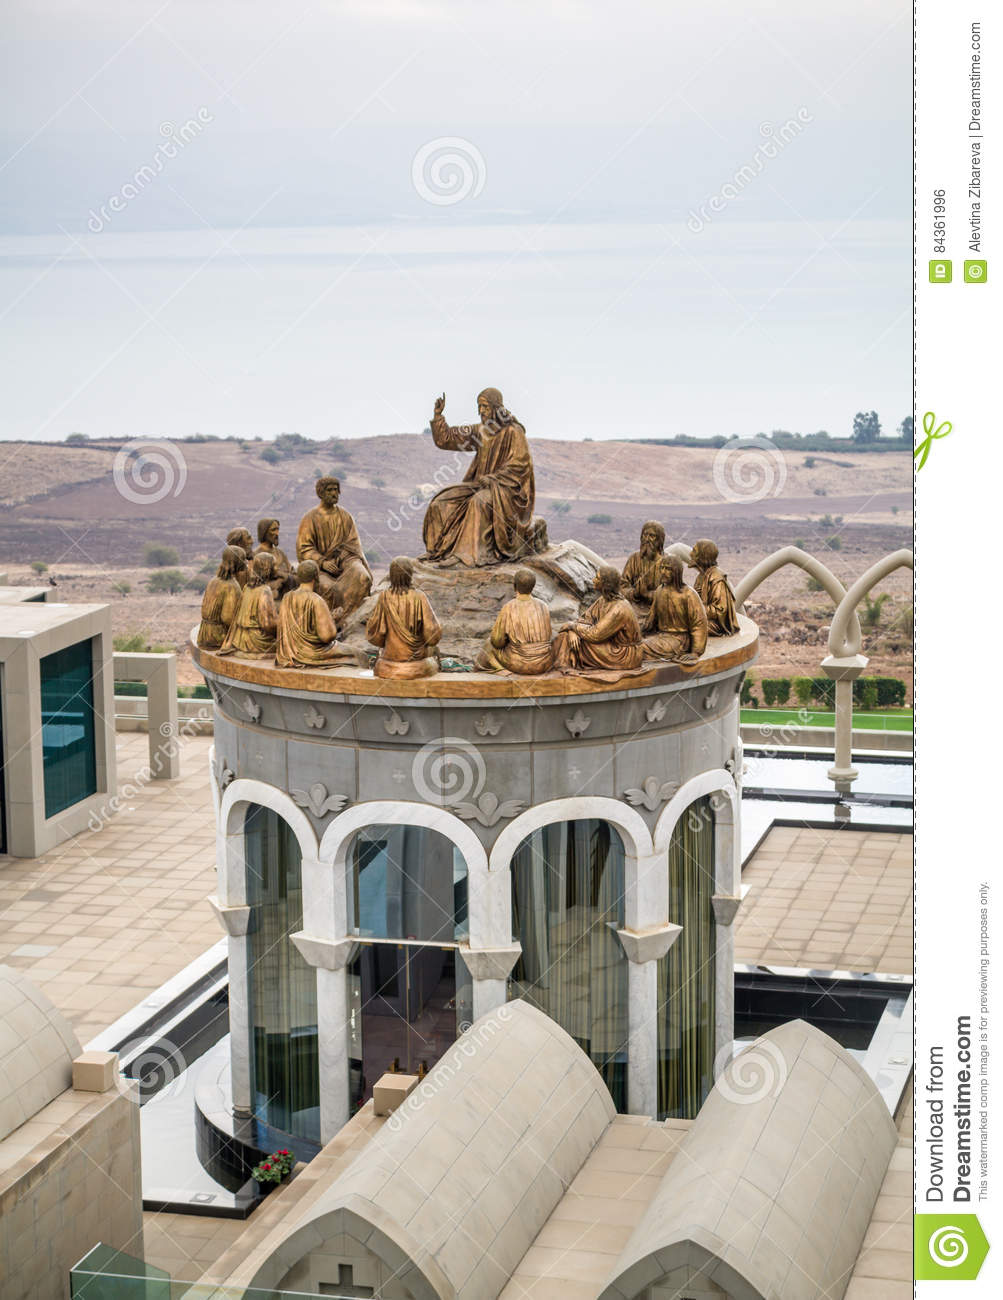 The Statues Of Jesus And Twelve Apostles Domus Galilaeae In Israel